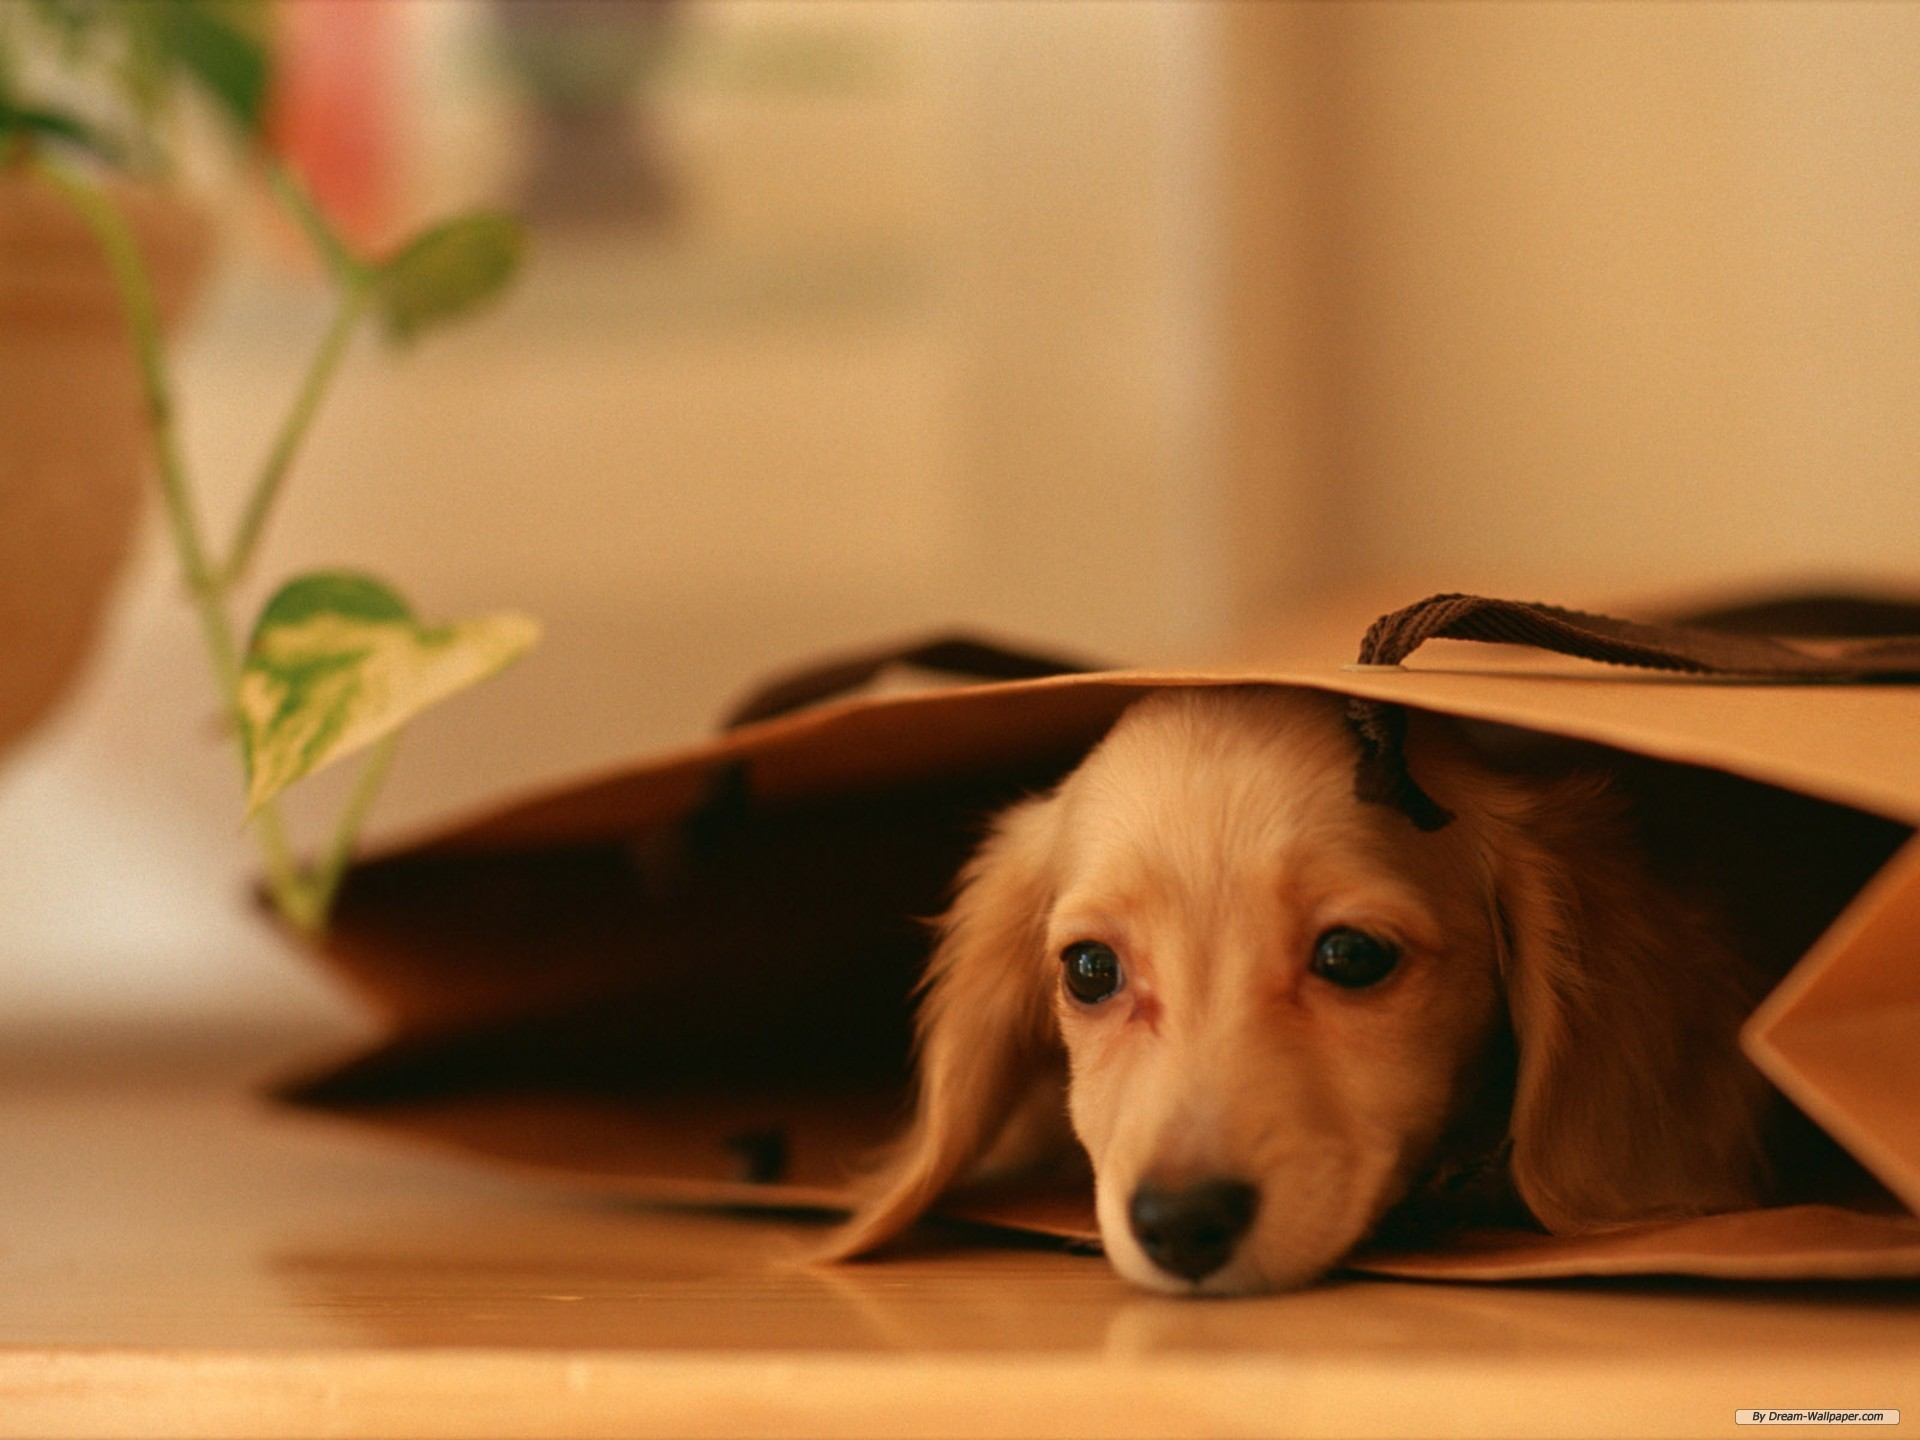 1920x1440 Free Animal wallpaper - Miniature Dachshund wallpaper -  wallpaper  - Index 9.